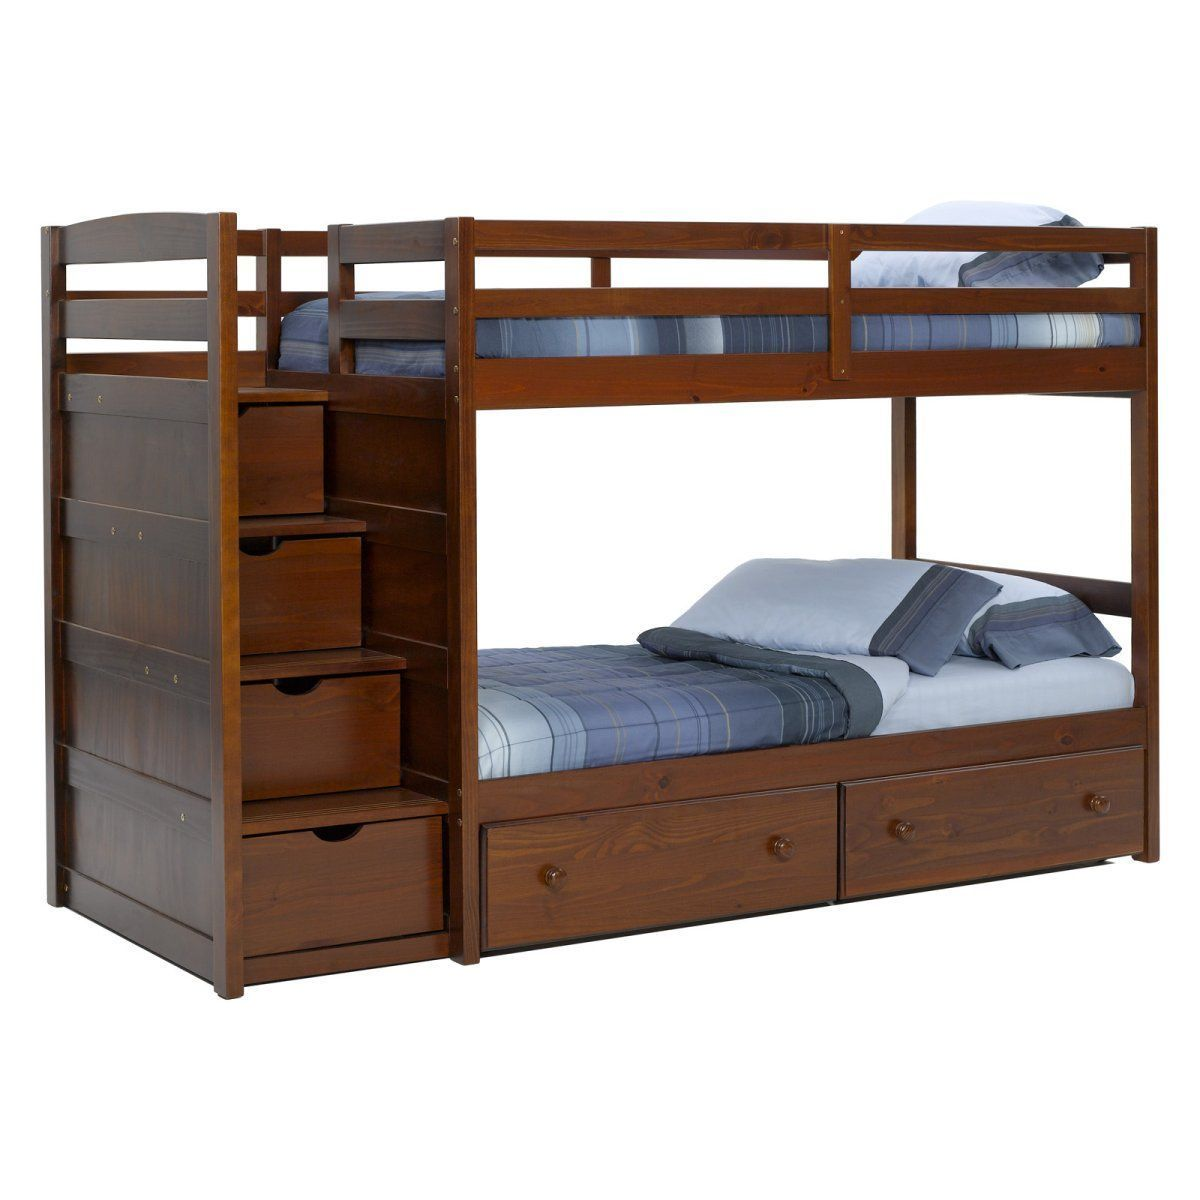 Pine Ridge Front Loading Stair Bunk Bed   Chocolate   Twin Over Twin Bunk  Beds With Stair Drawers